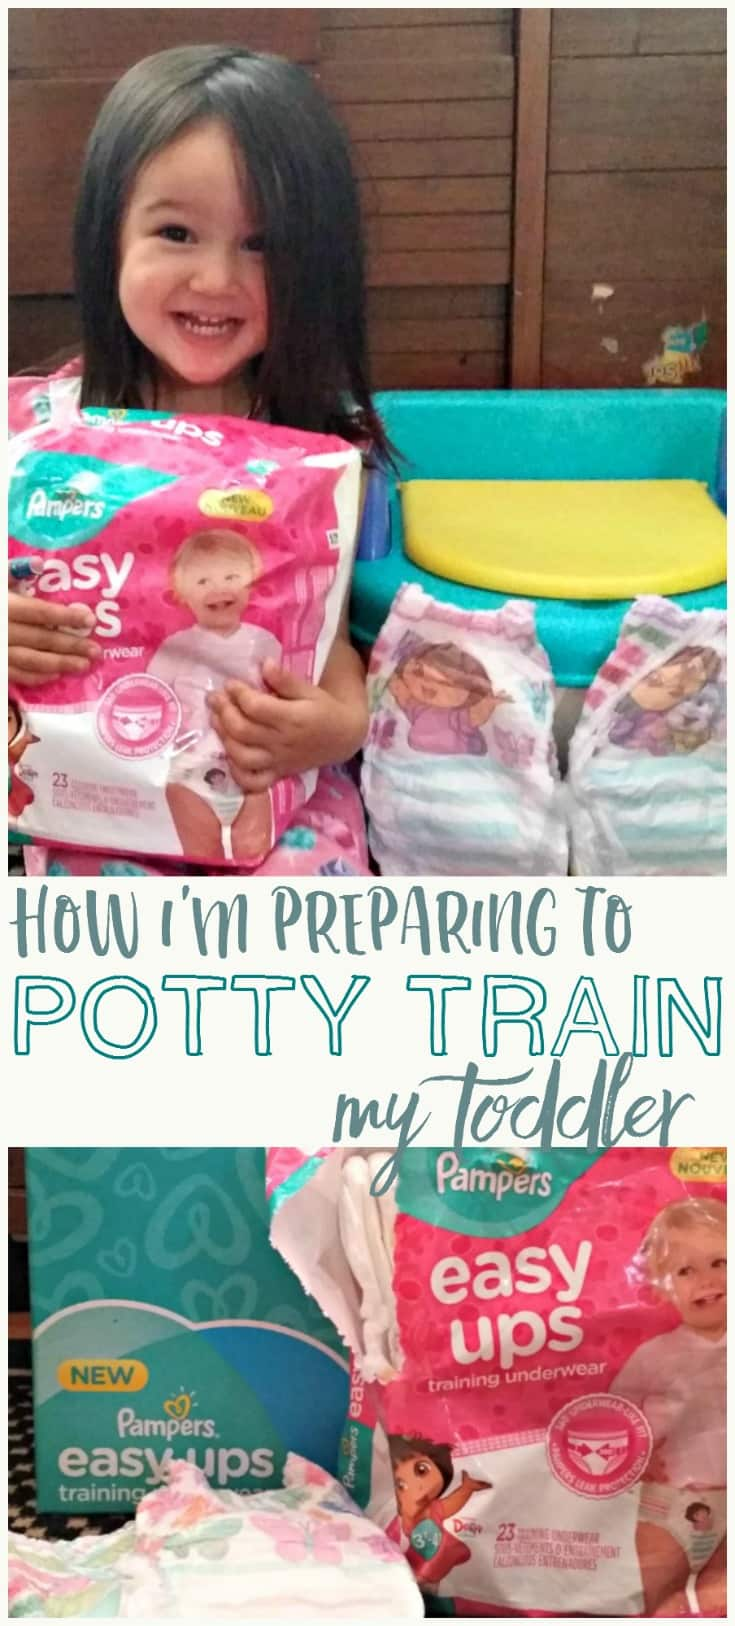 Potty training is a huge milestone for any toddler and an important step for their independence. Help them out with these potty training tips.